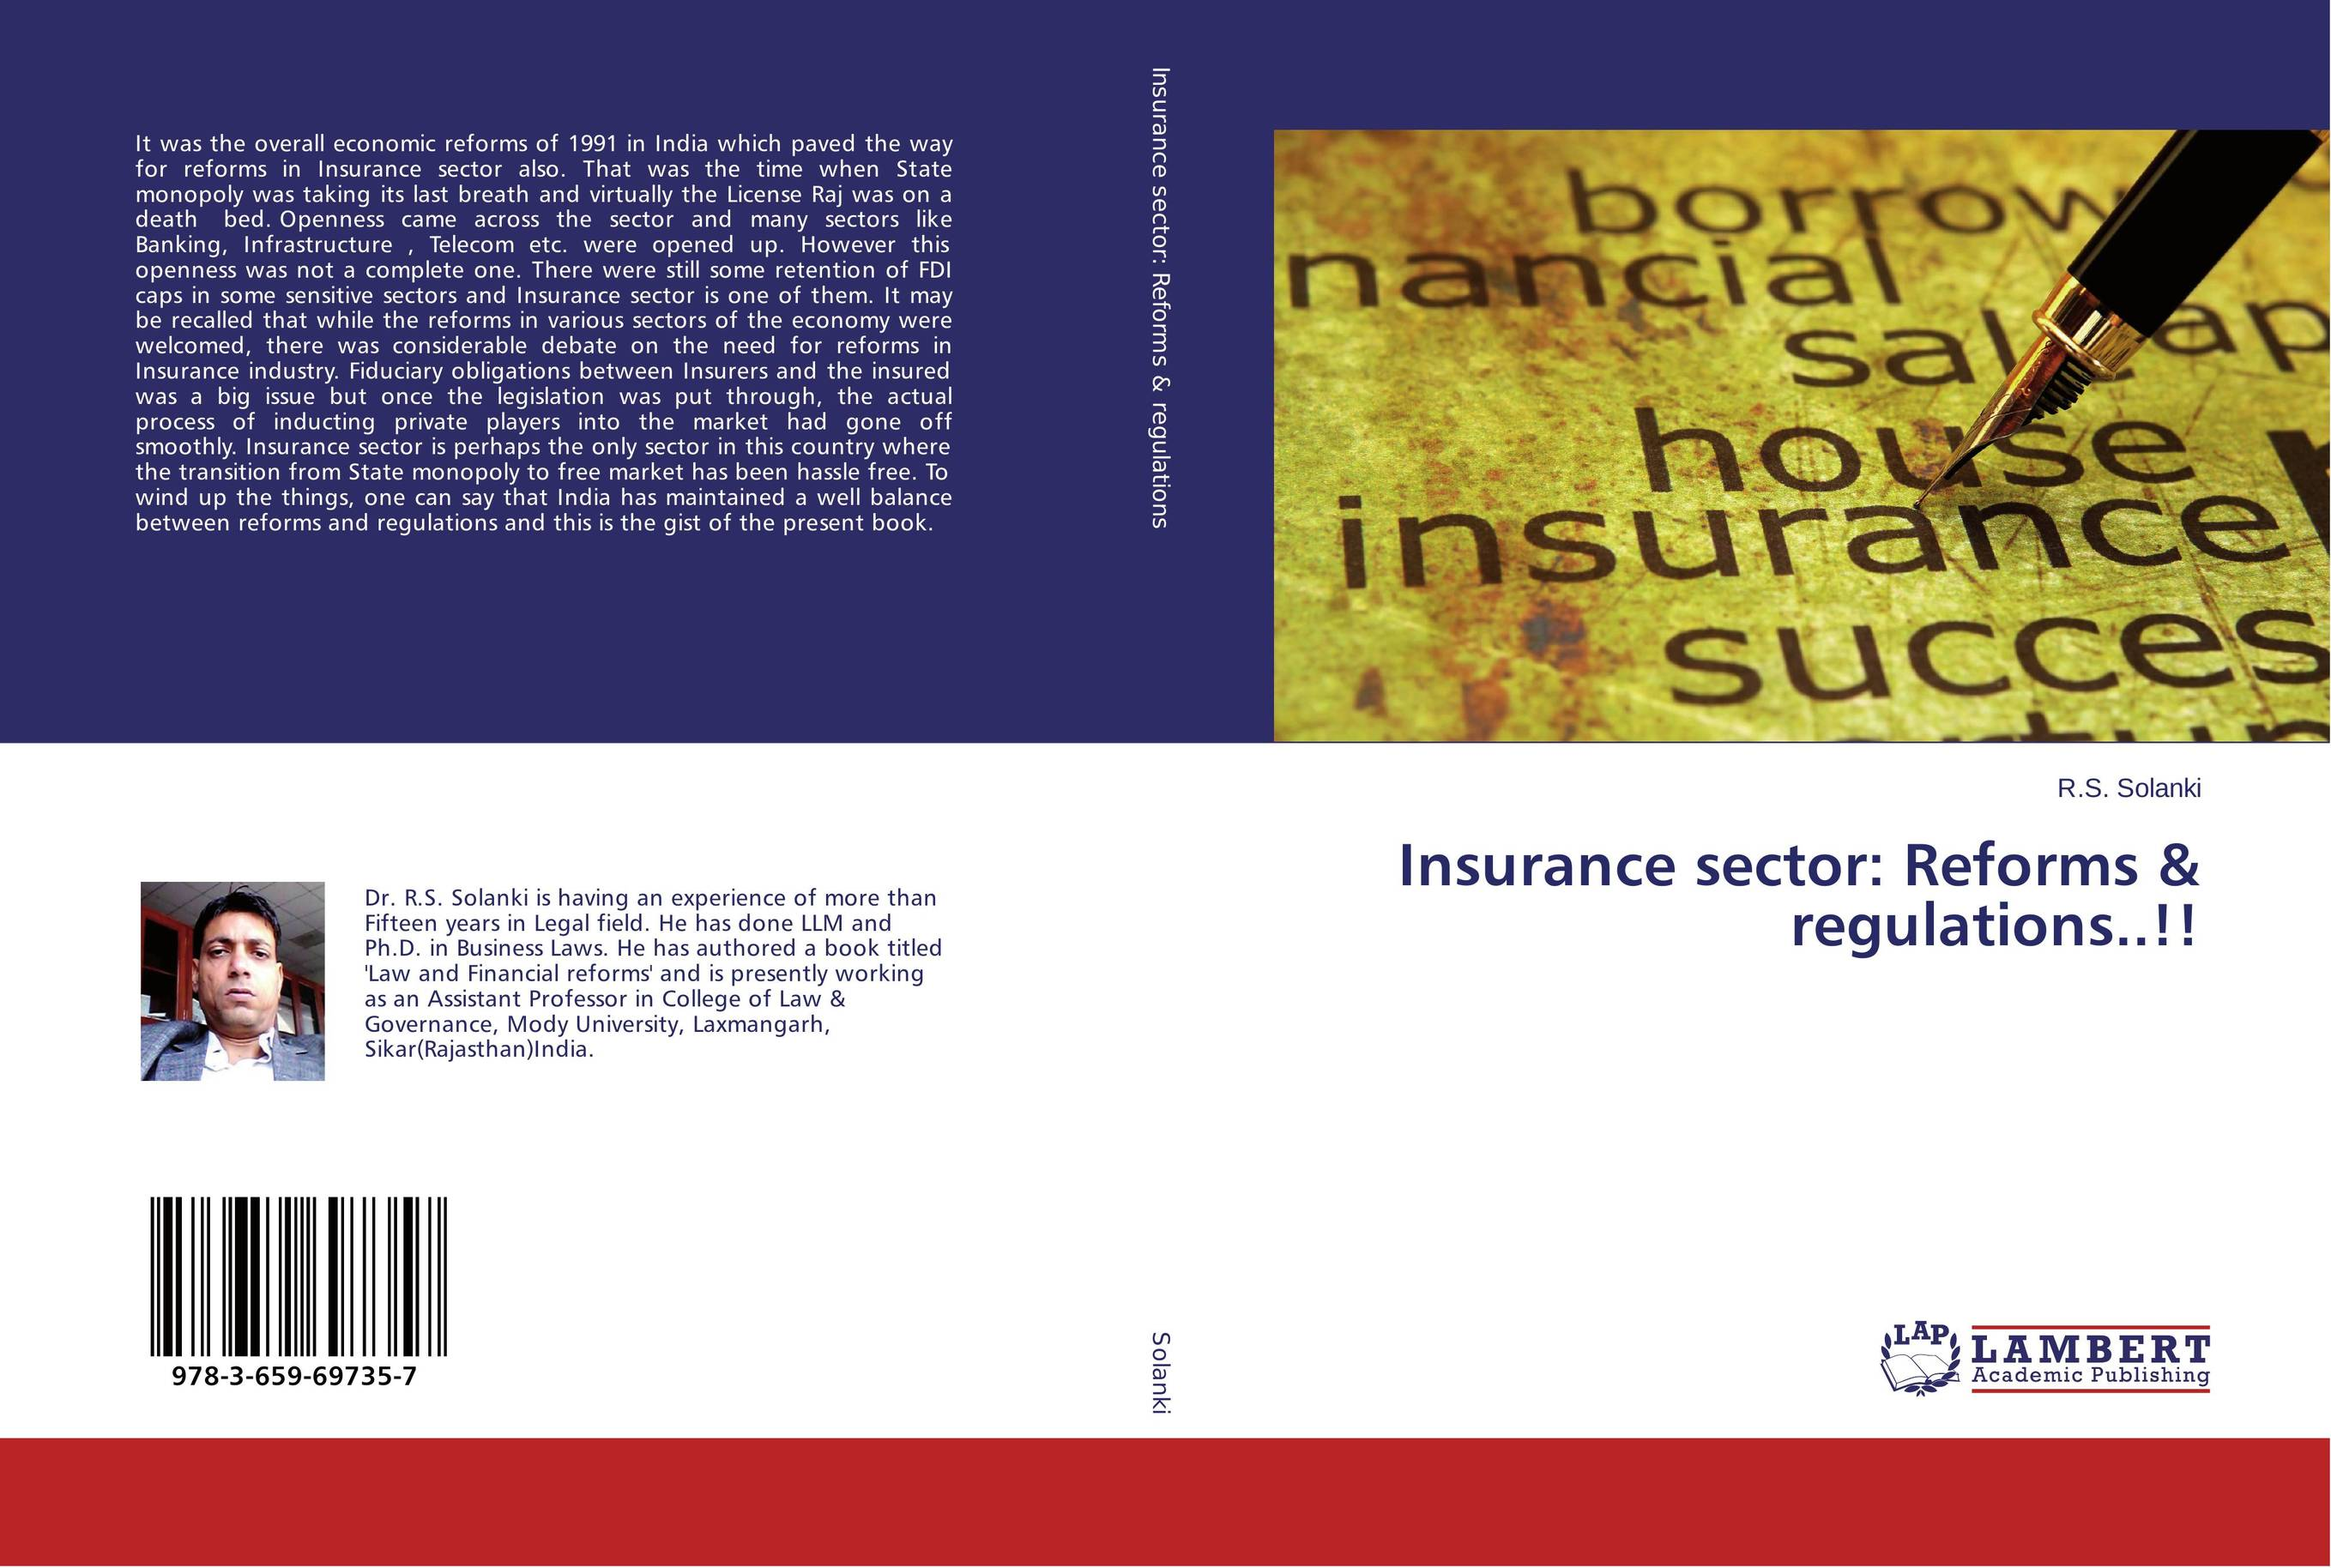 Insurance sector: Reforms & regulations..!! economic reforms and growth of insurance sector in india